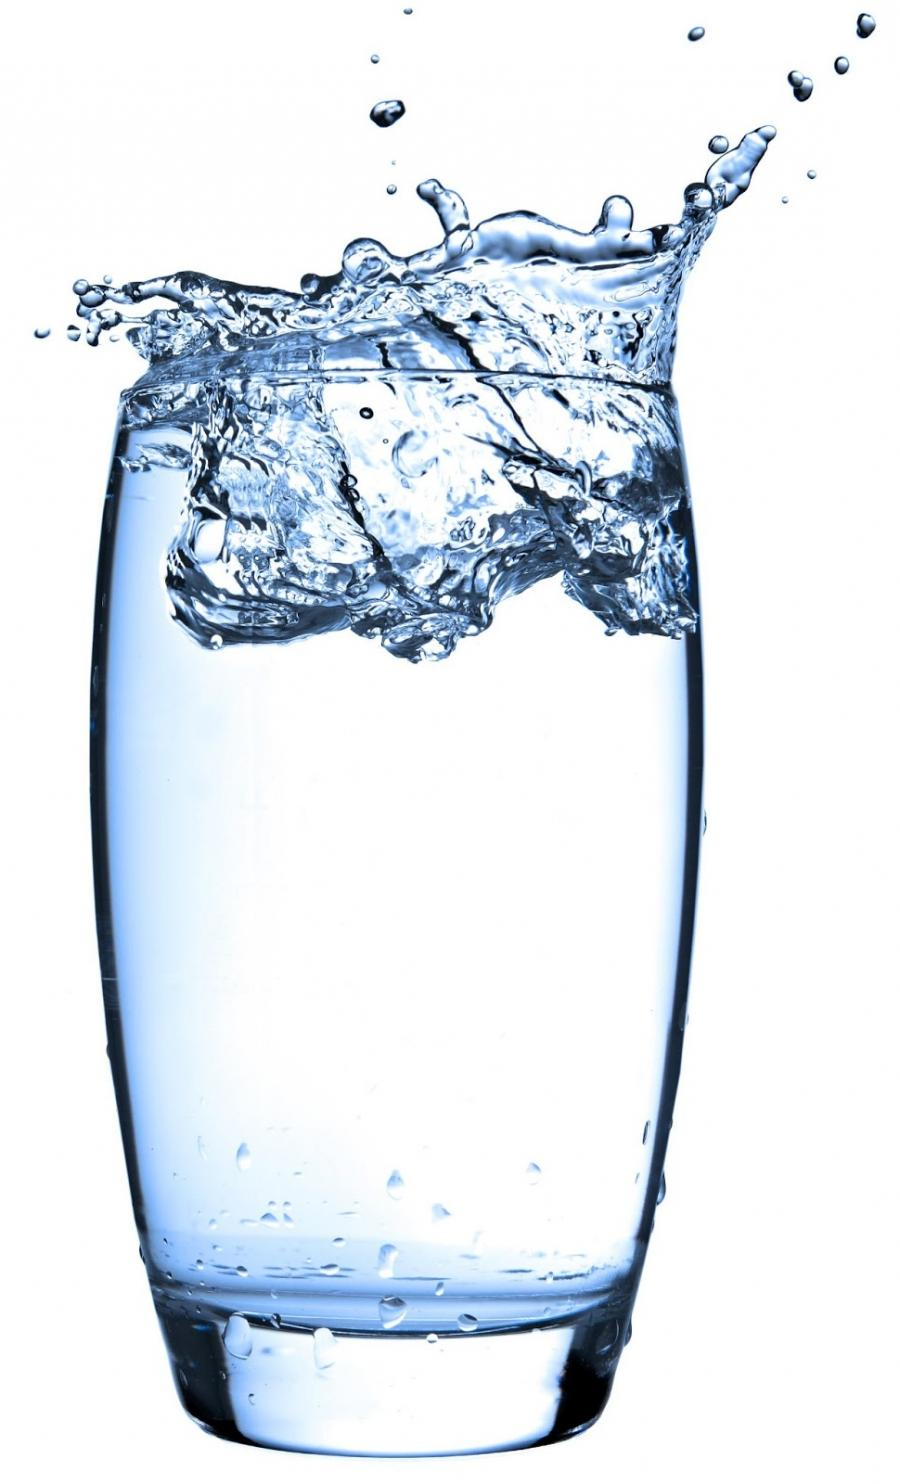 Drink Glasses Of Water A Day